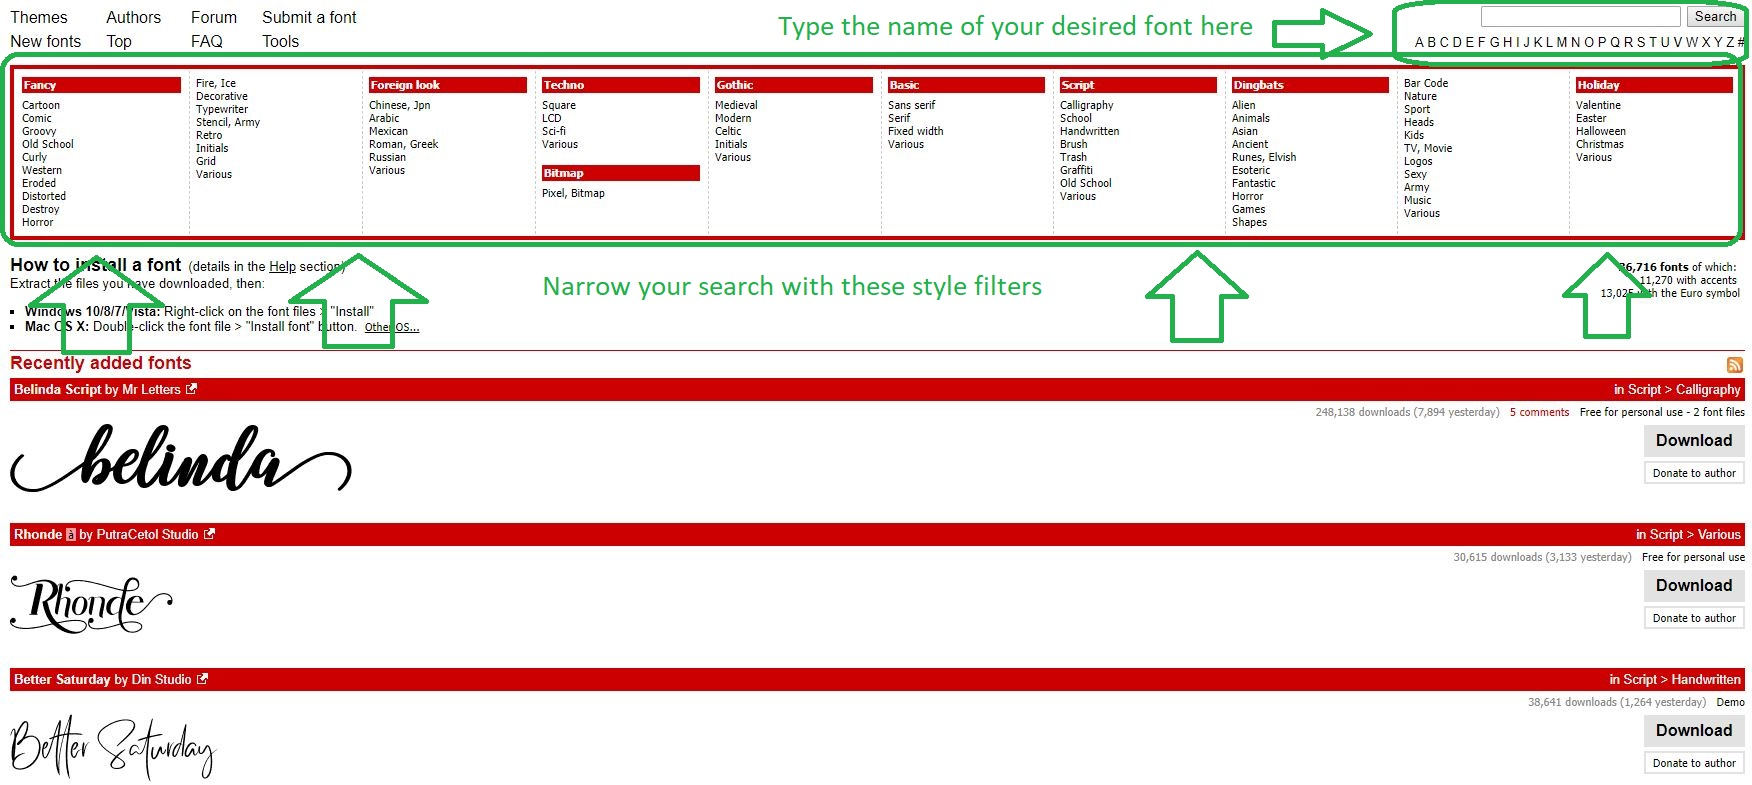 narrow your search or type in your chosen font name!